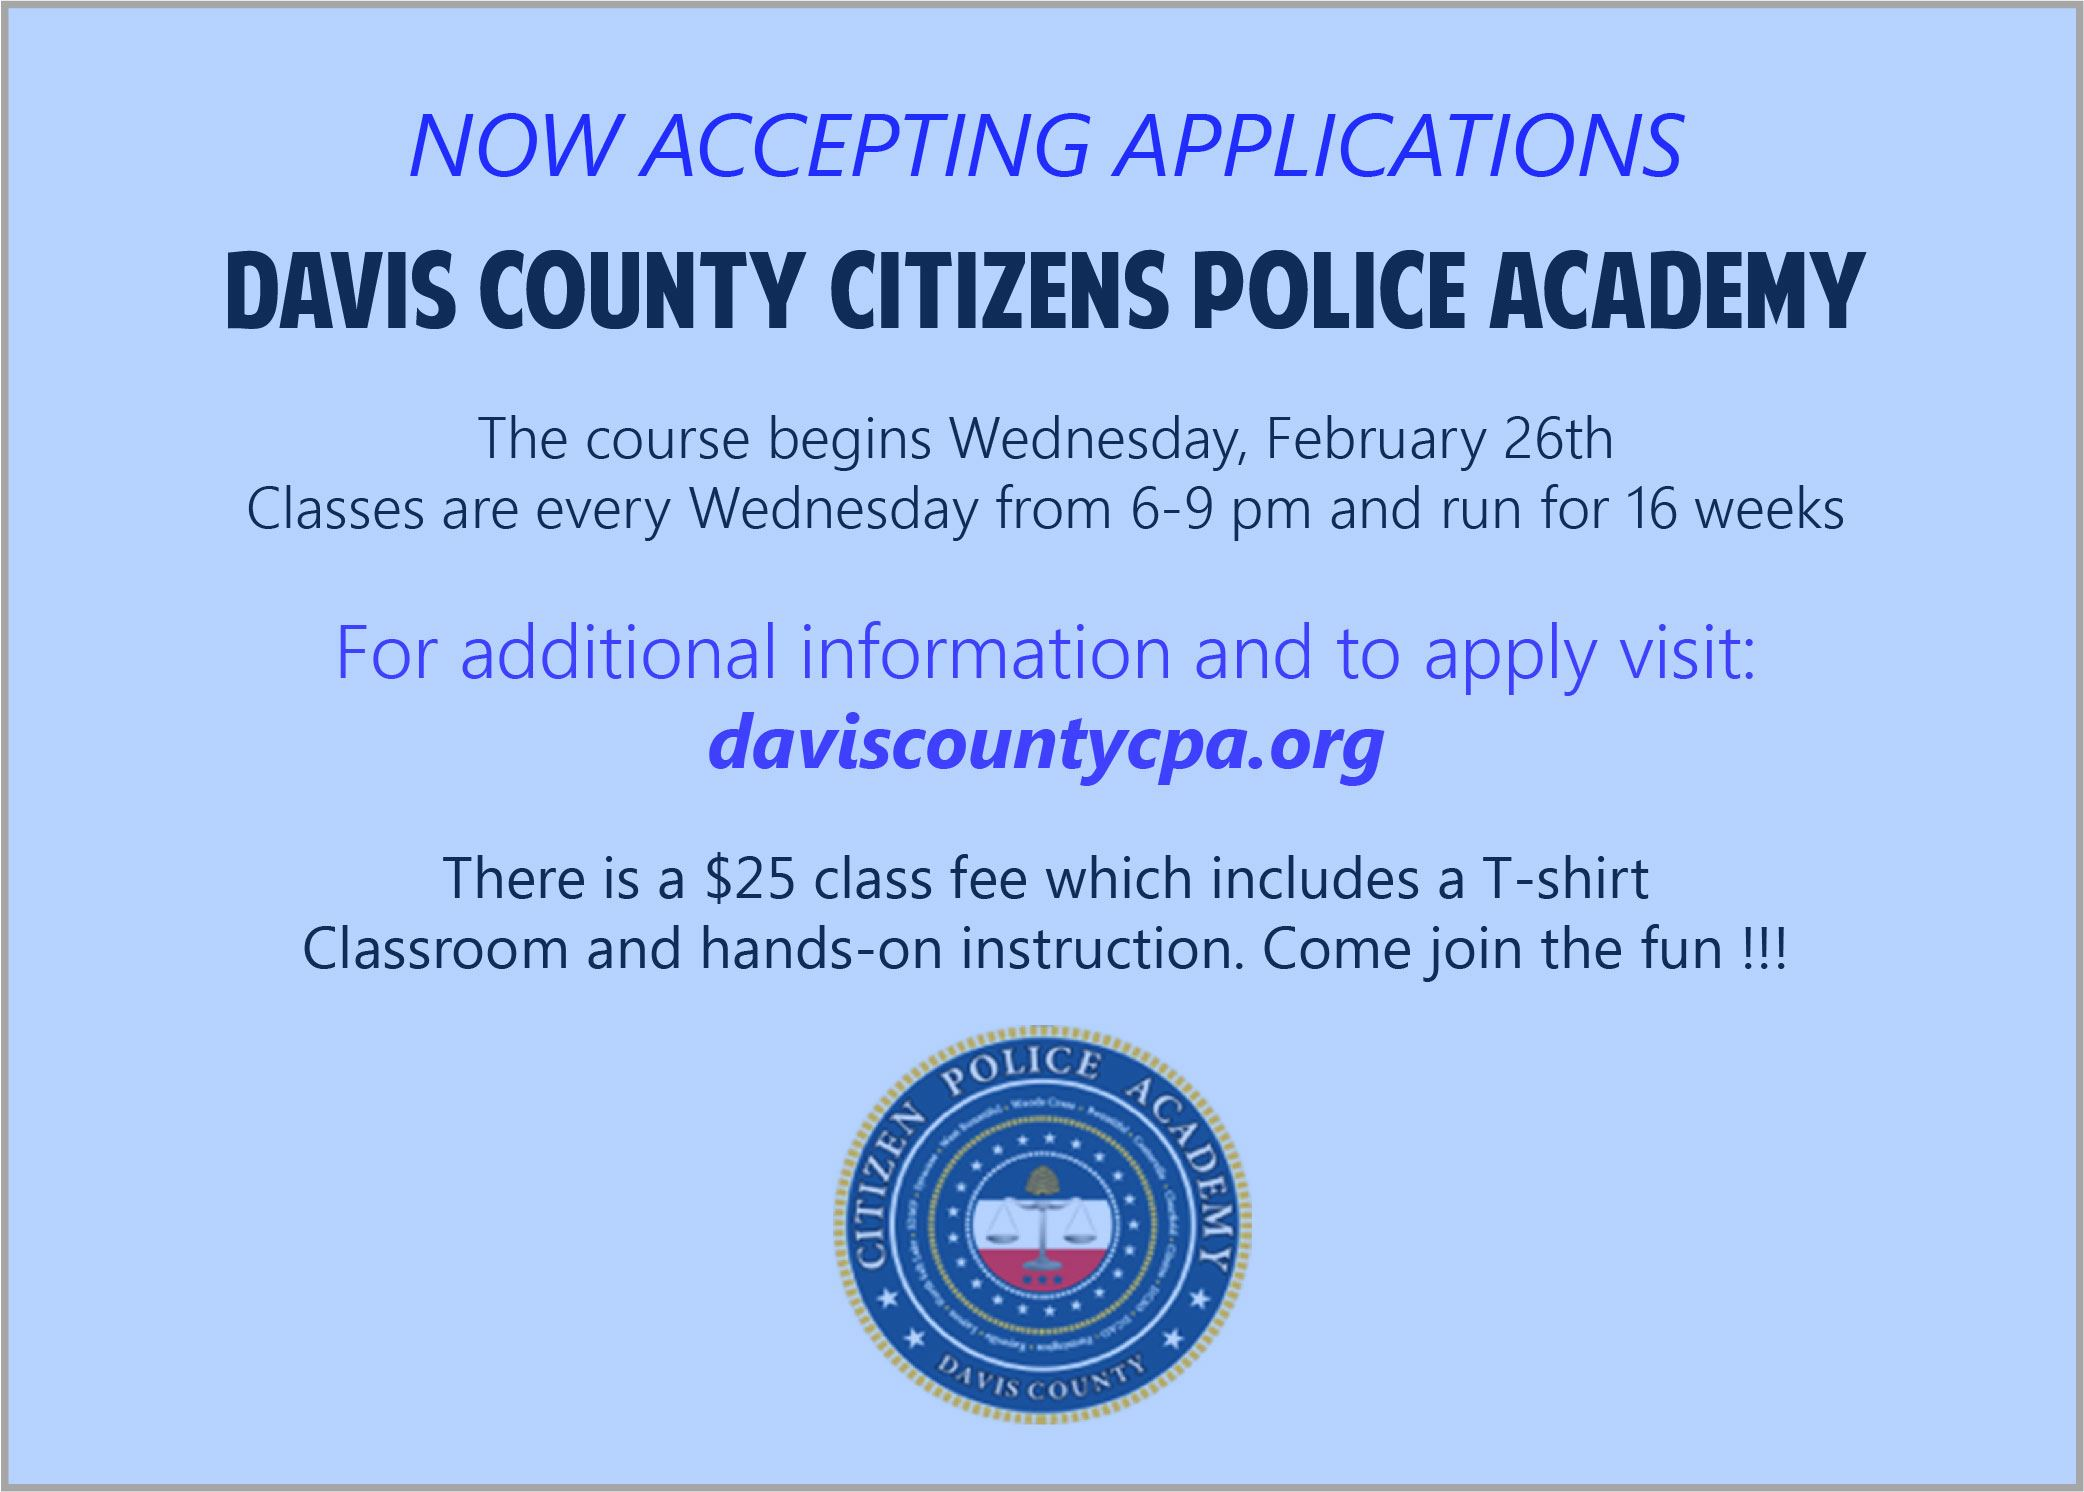 Citizens Police Academy Announcement